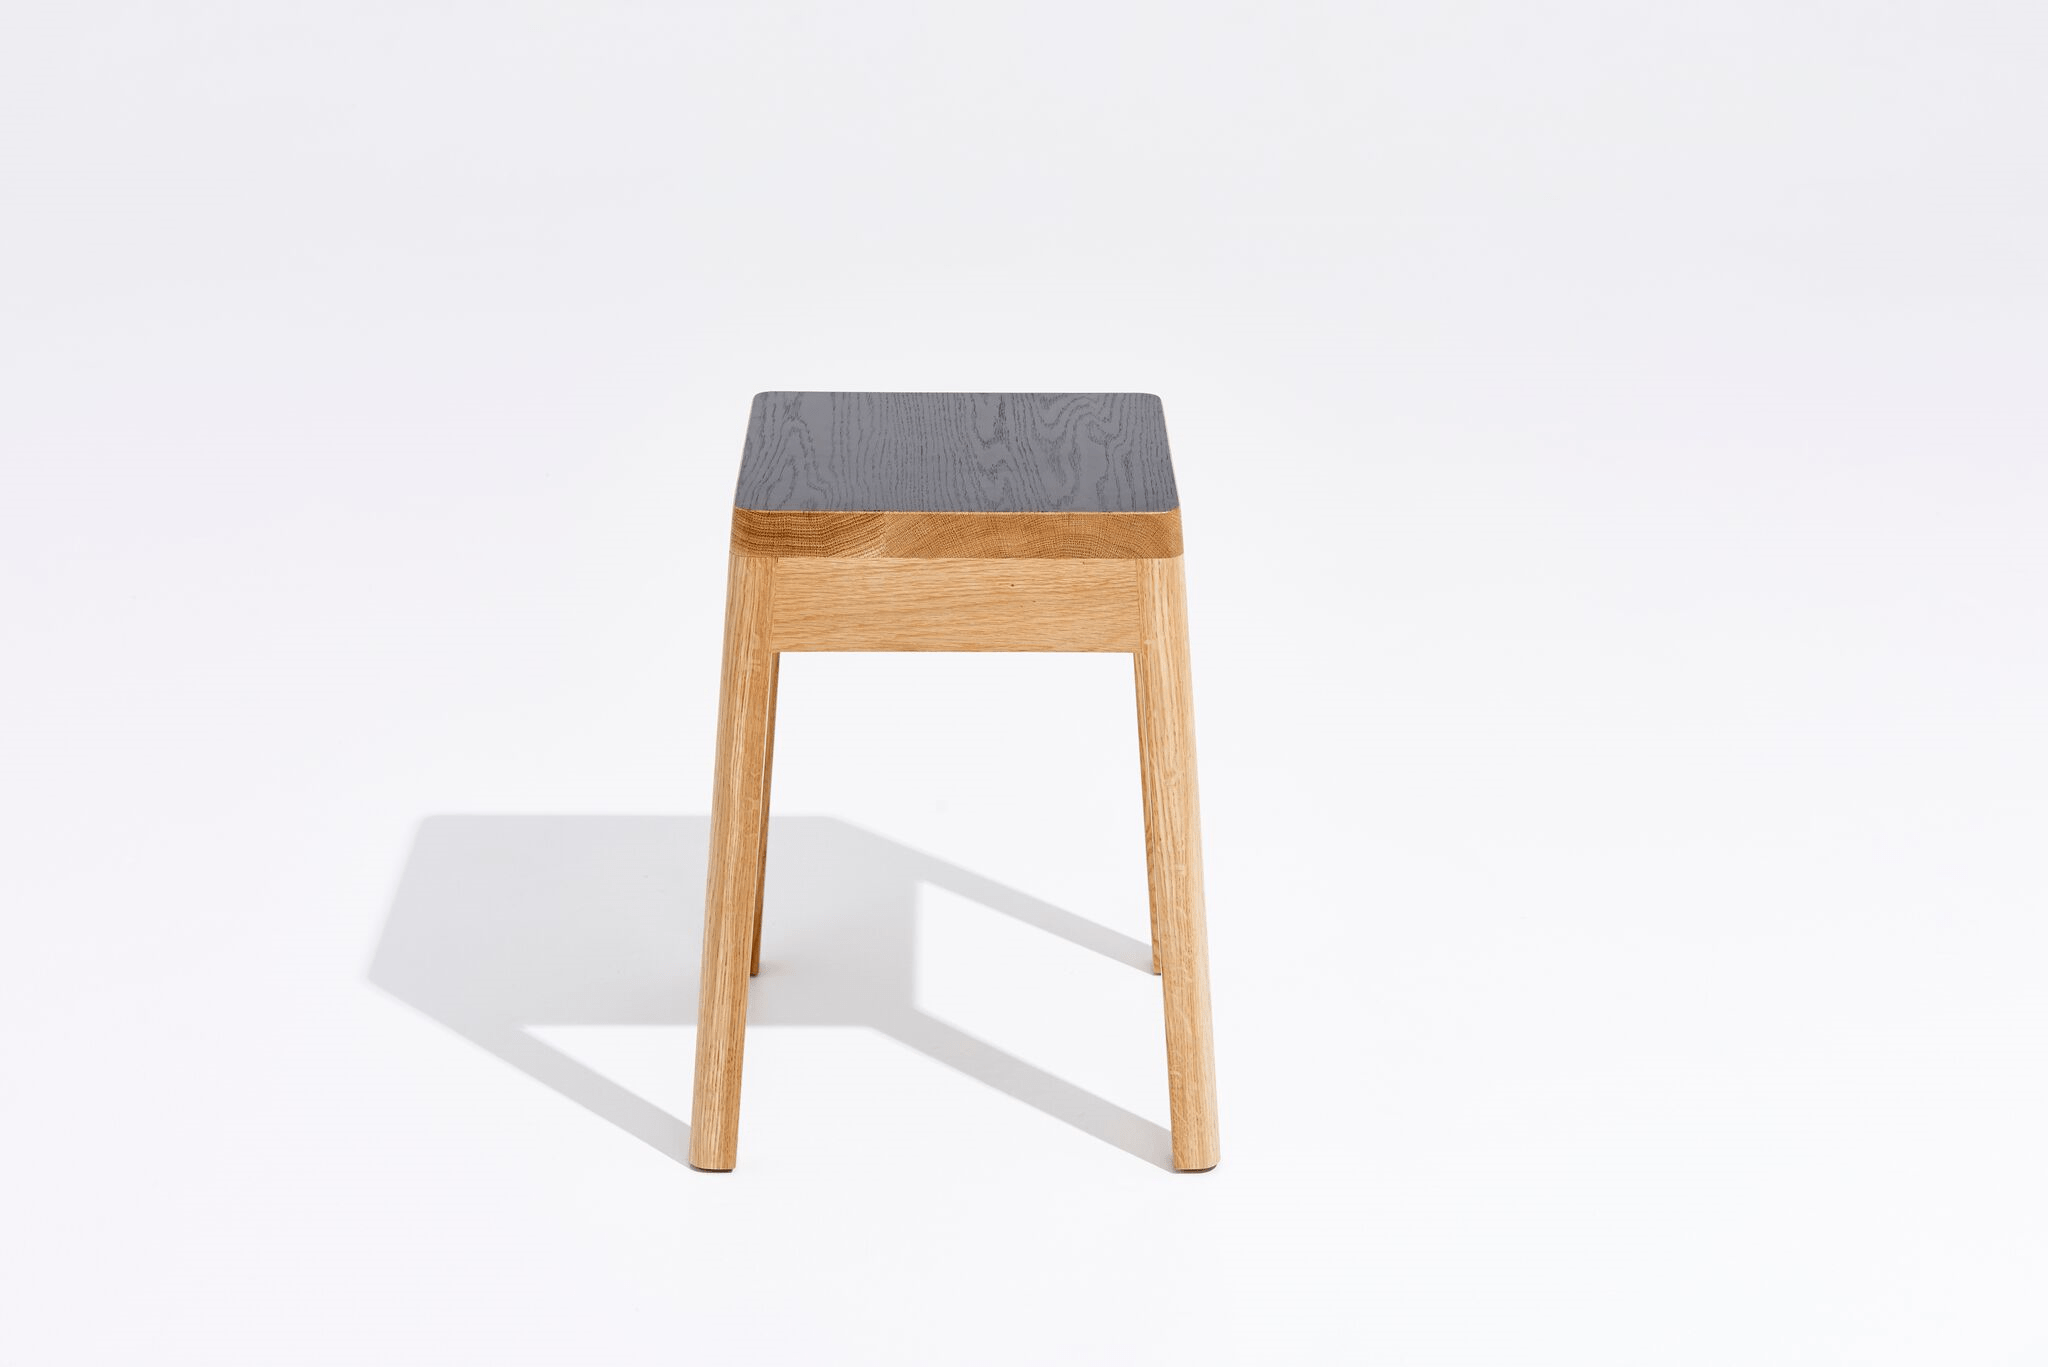 Innovative seating solutions